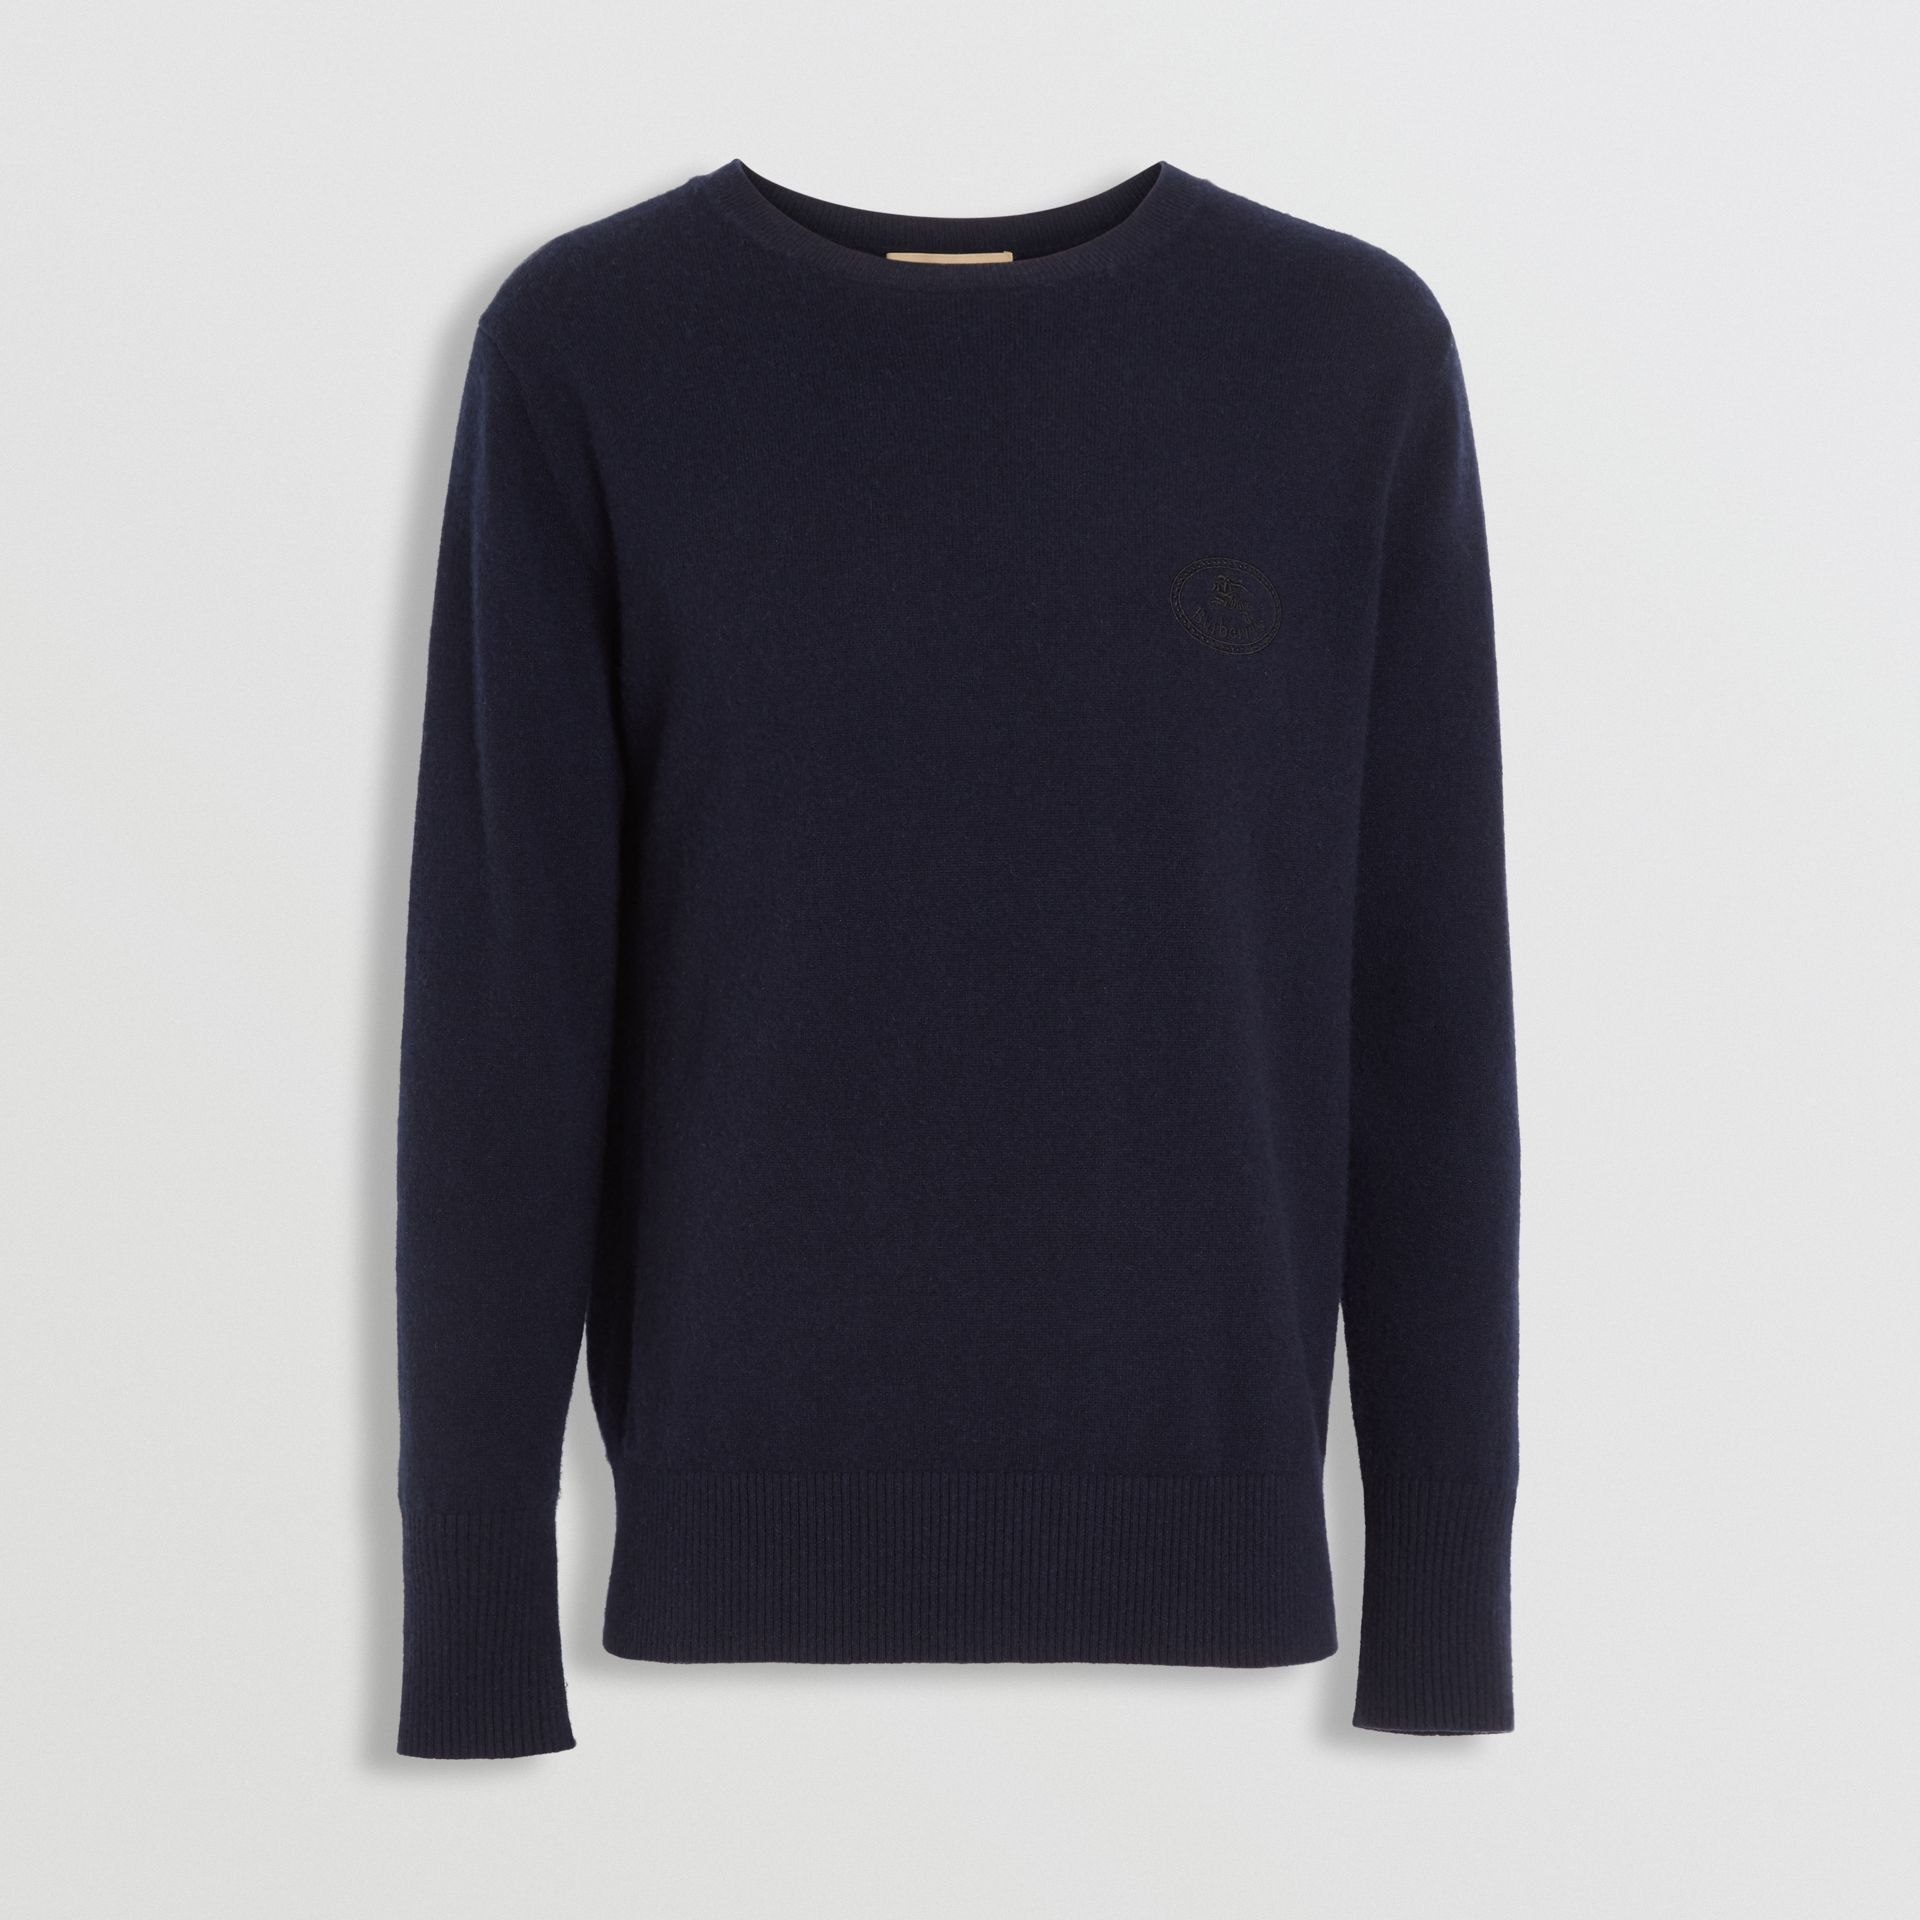 Embroidered Archive Logo Cashmere Sweater in Navy - Men | Burberry United States - gallery image 3